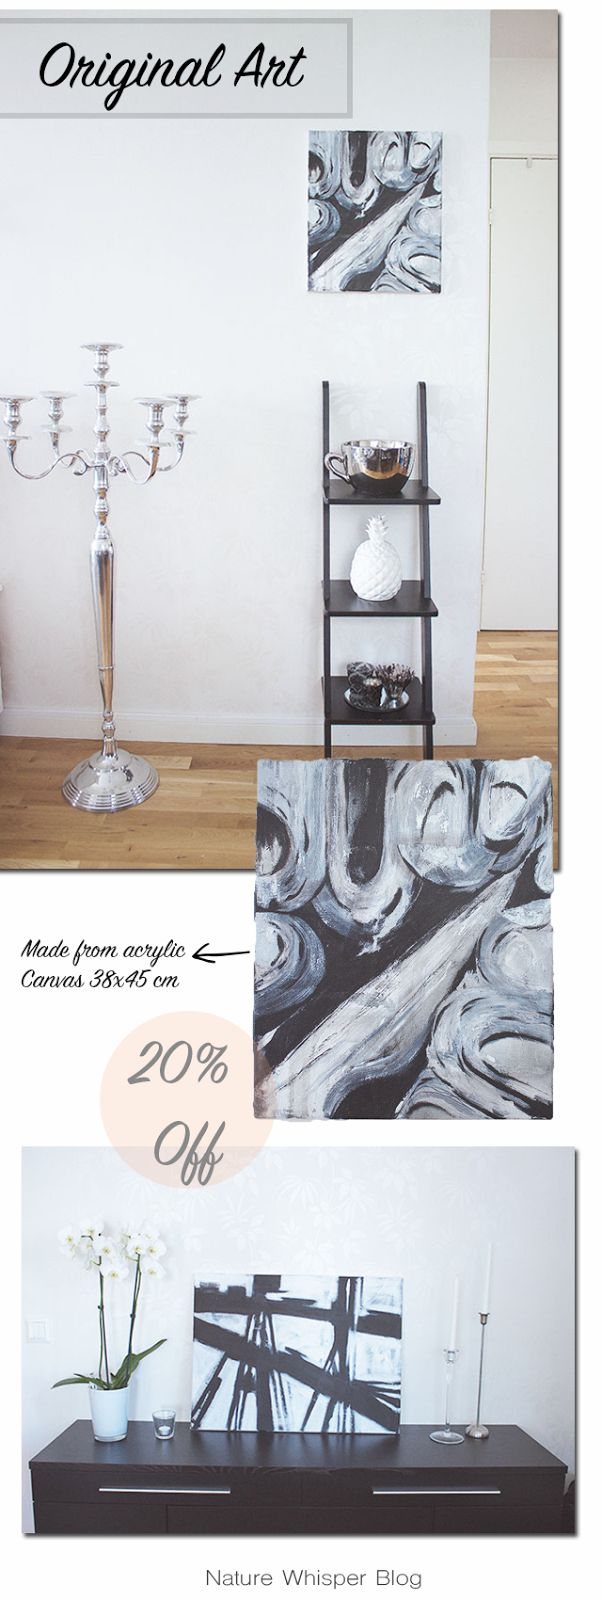 20% Off For The Last Two Original Paintings | NATURE WHISPER